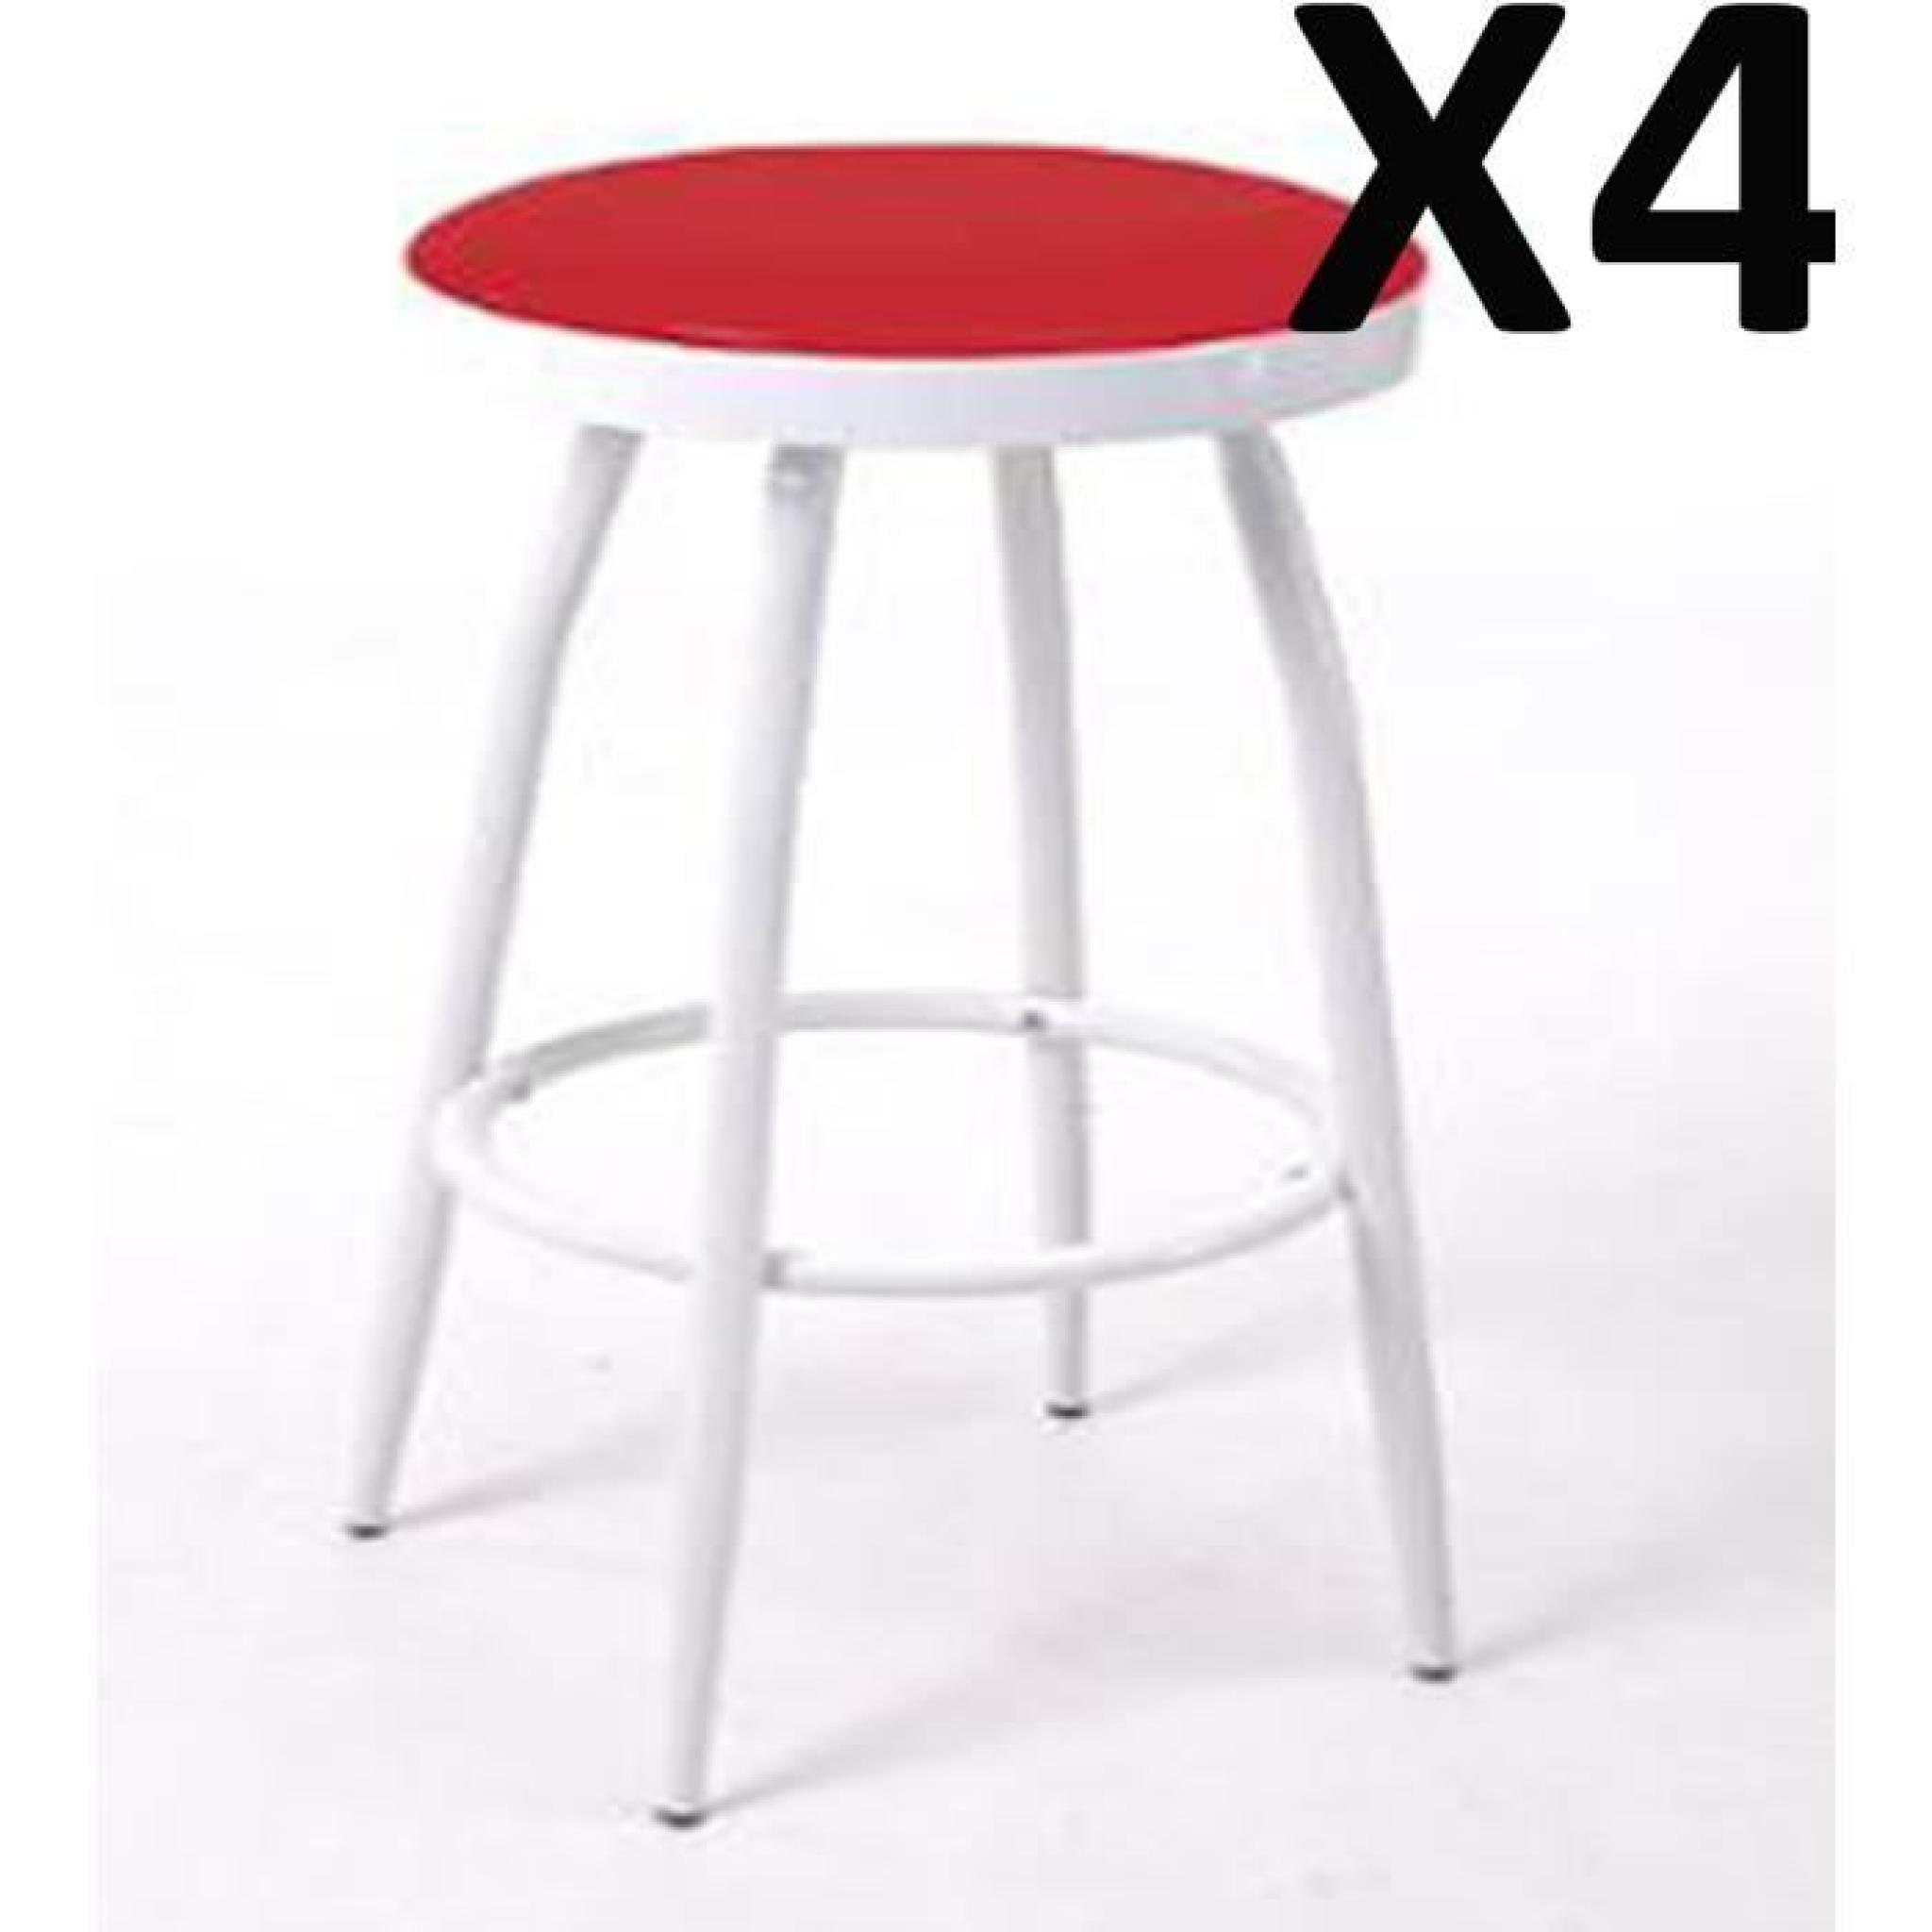 Lot de 4 tabourets de bar rouge h 78 x d 36 cm achat vente tabouret de bar - Lot tabouret de bar pas cher ...